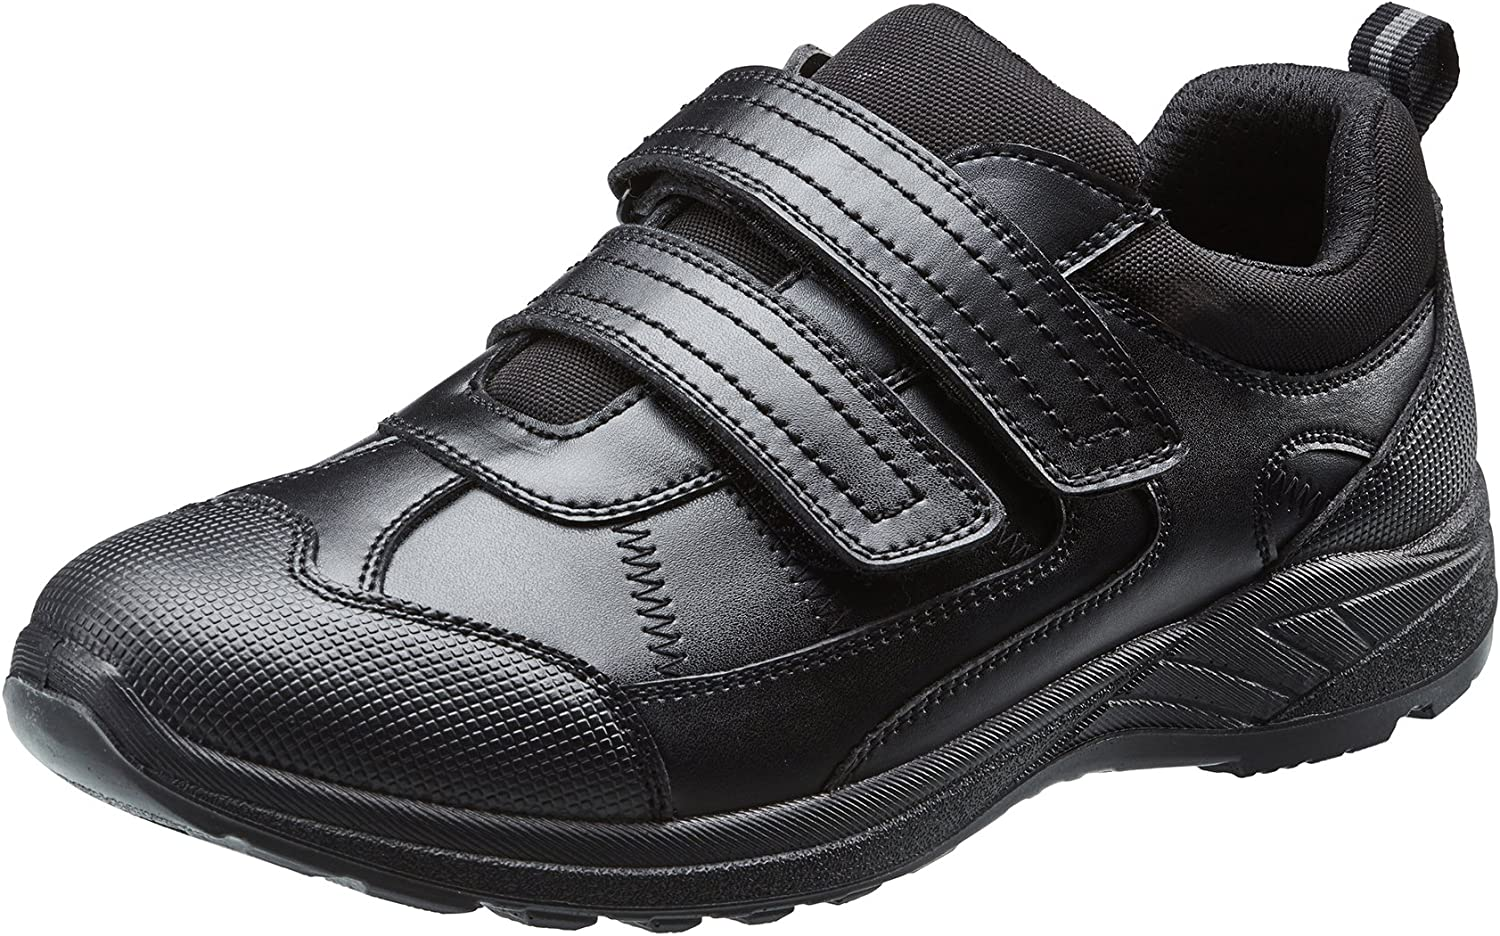 TREADS Kids School Shoes Children/'s Black Leather 12 Month Indestructible Guarantee Touch Fasten Formal Footwear with Adjustable Width /'Dual Fit/' Technology Perfect for Active Boys